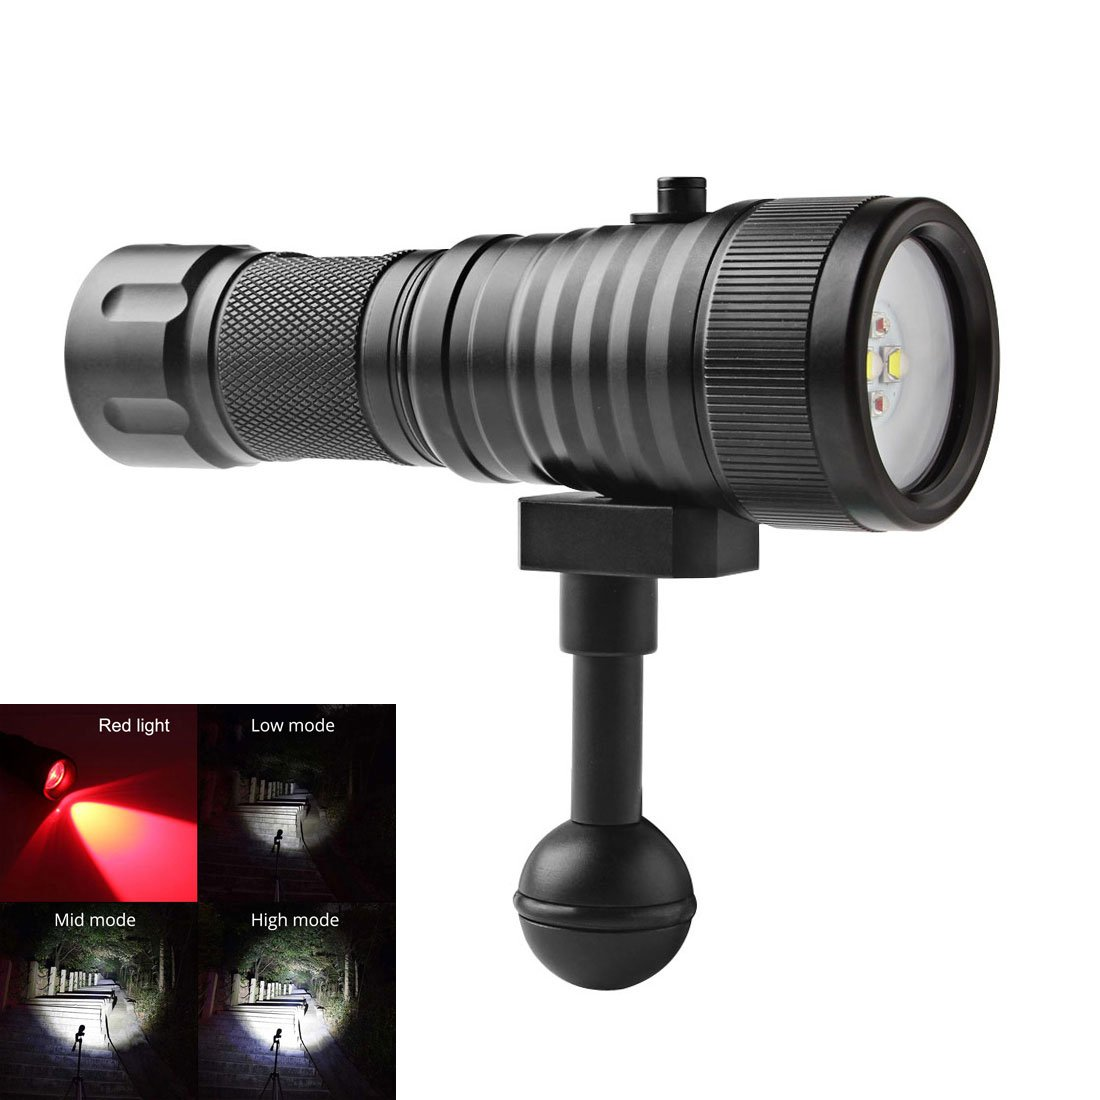 Battery Not Included U4 SecurityIng Wide 120 Degrees Beam Angle Scuba Diving Photography Video Flashlight 1500LM with 2 x Cree XM-L2 White Light 2 x XP-E R5 Red LED EPCDirect EPC/_LEF/_S0G